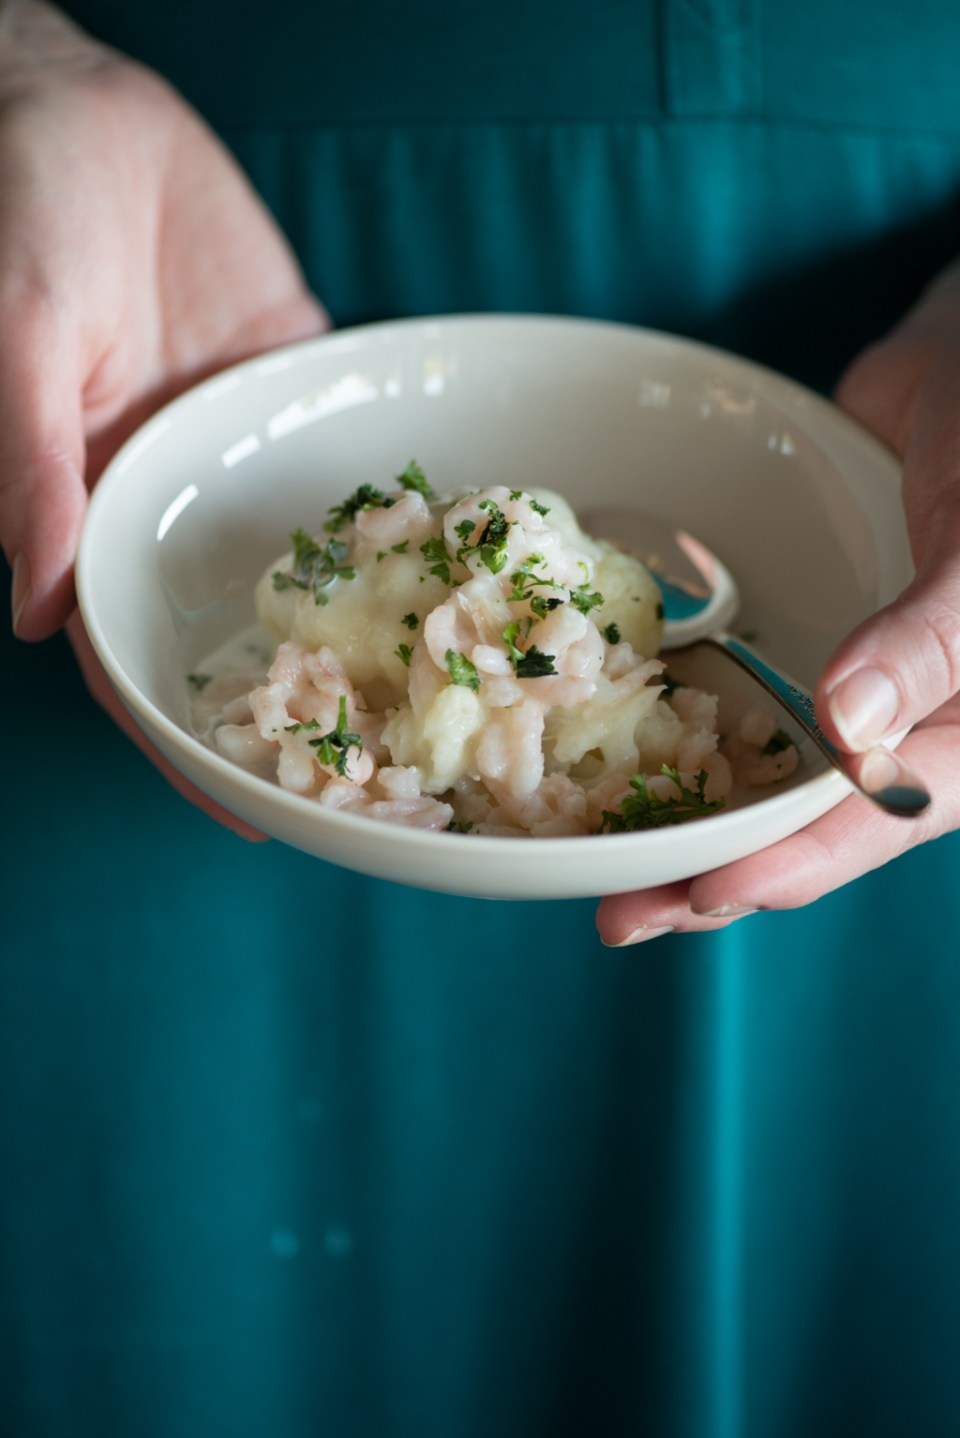 Steamed Cauliflower with Wine, Herbs, and Creamy Shrimp Sauce from Norwegian-American Food Writer Daytona Strong